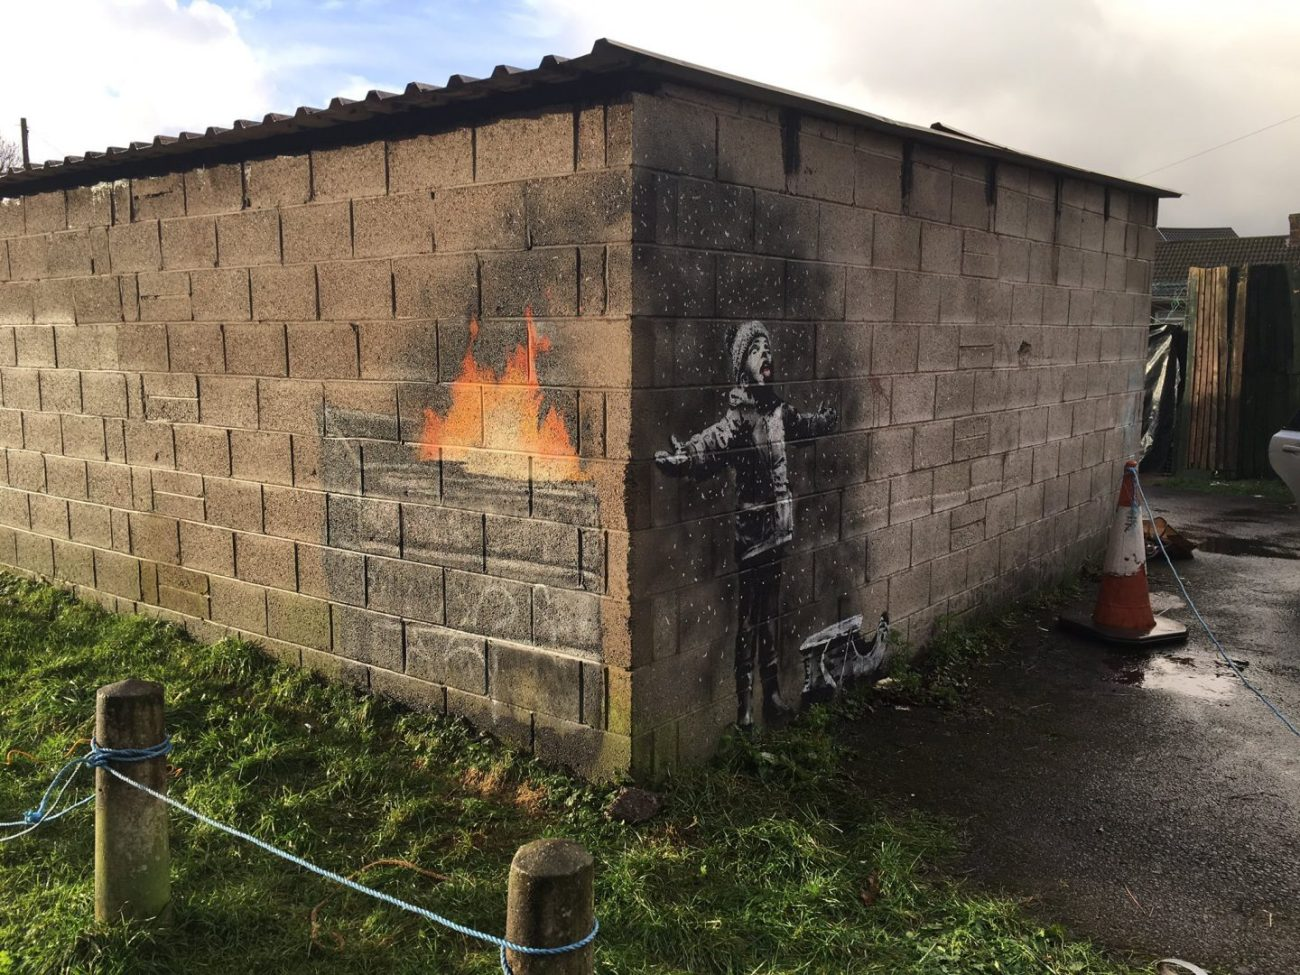 Banksy @Port Talbot, UK